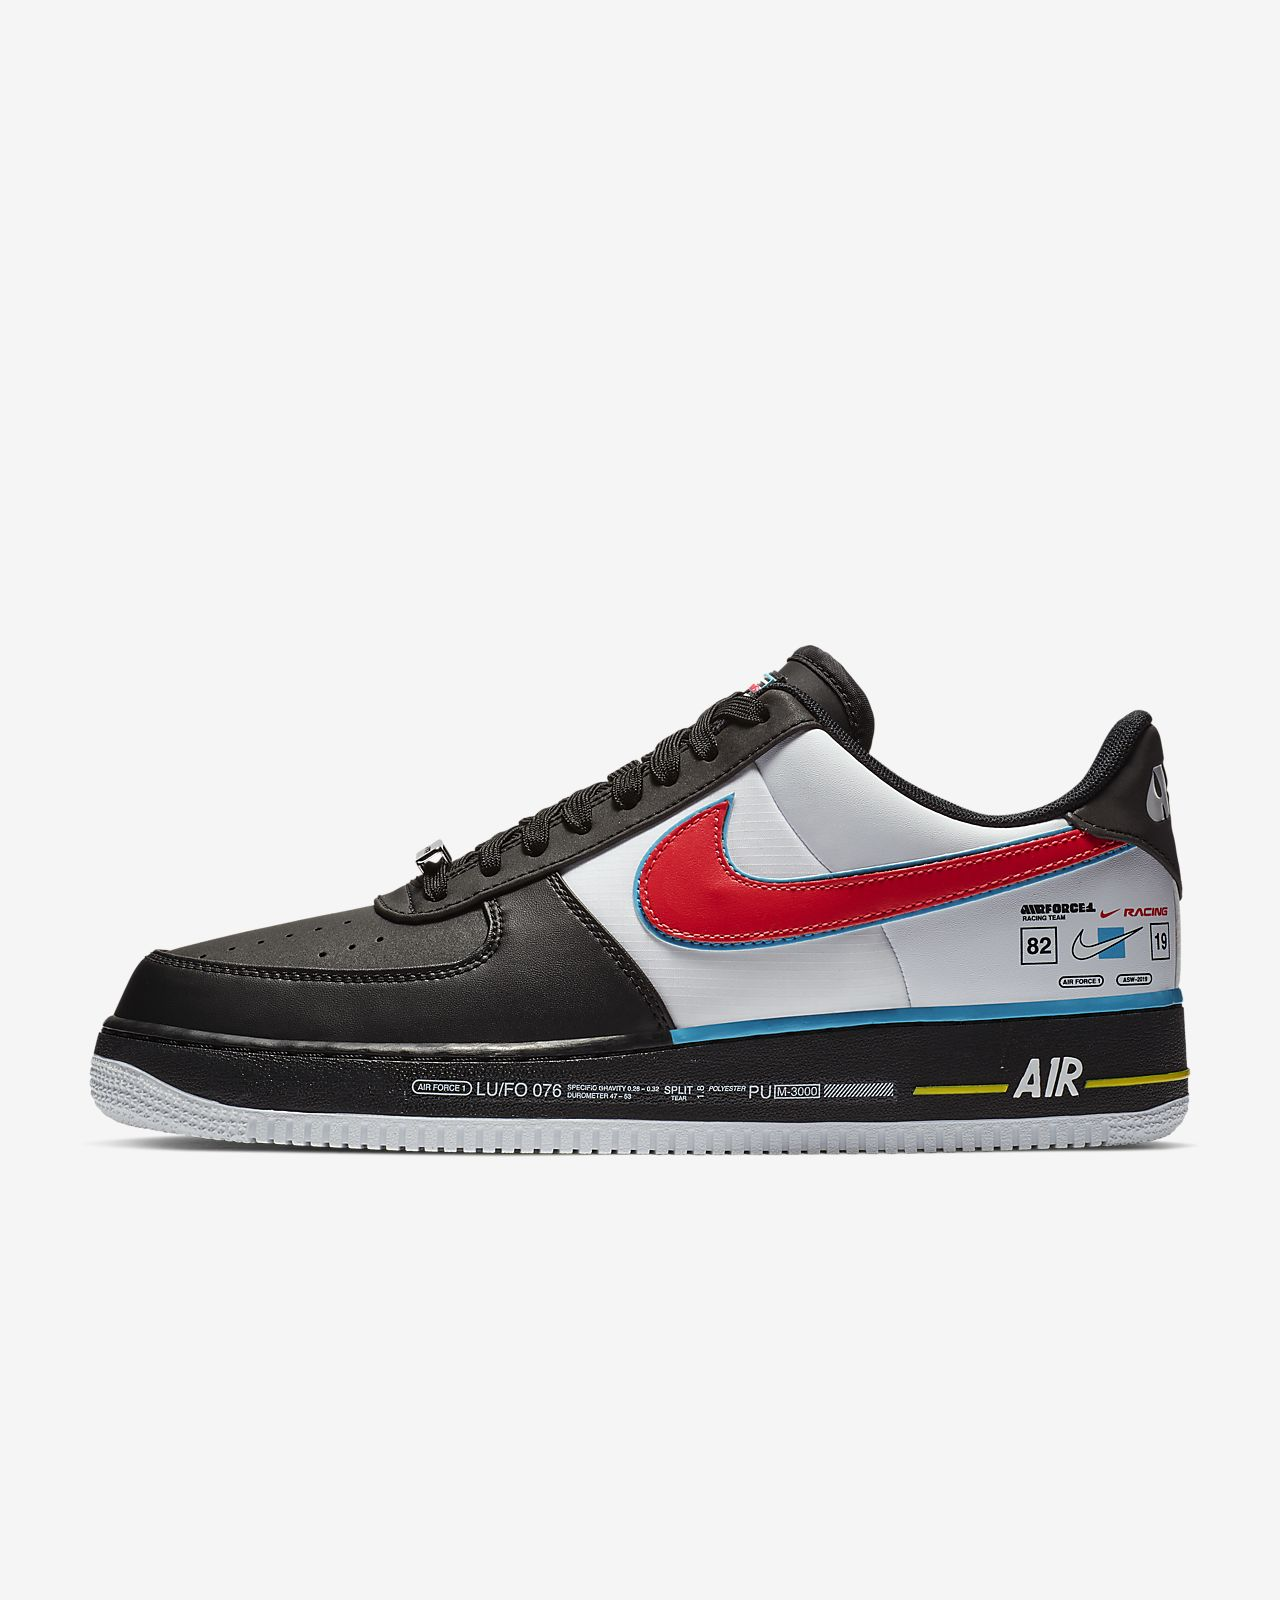 nikes shoes air force 1